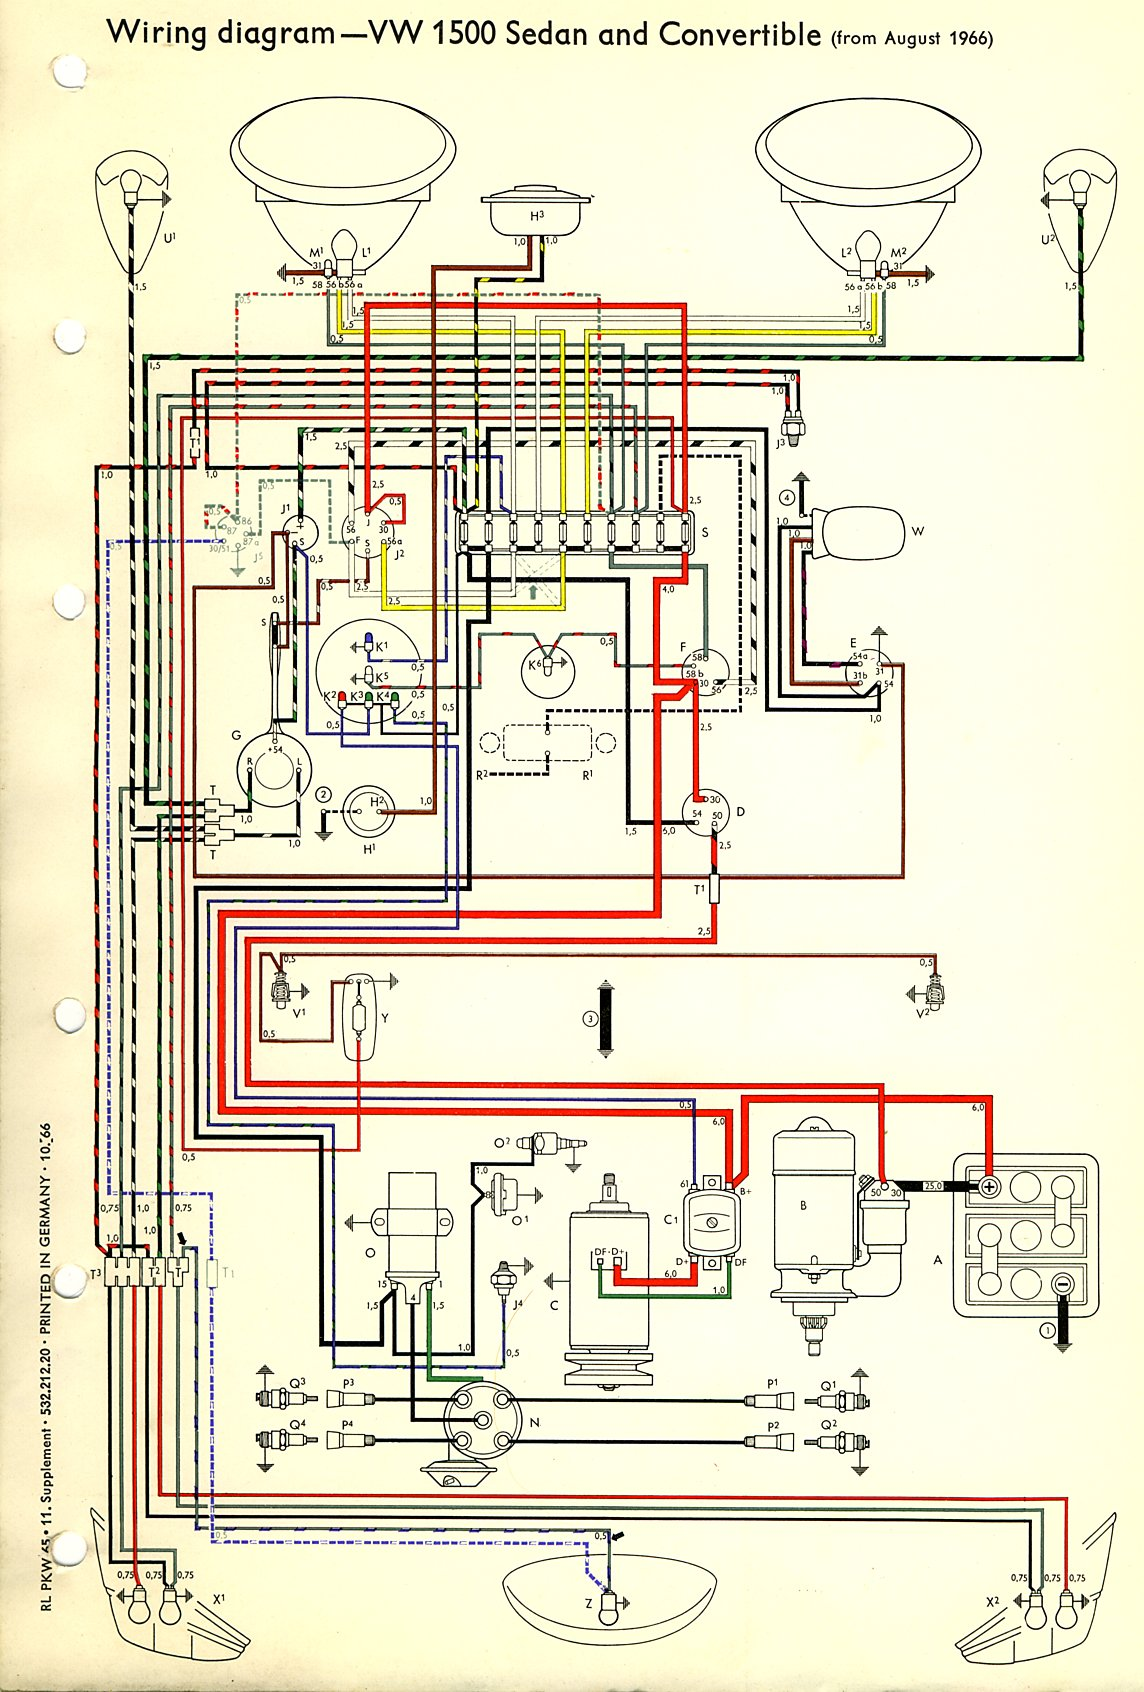 Wiring Harness For 72 Vw Bug - Wiring Diagrams on